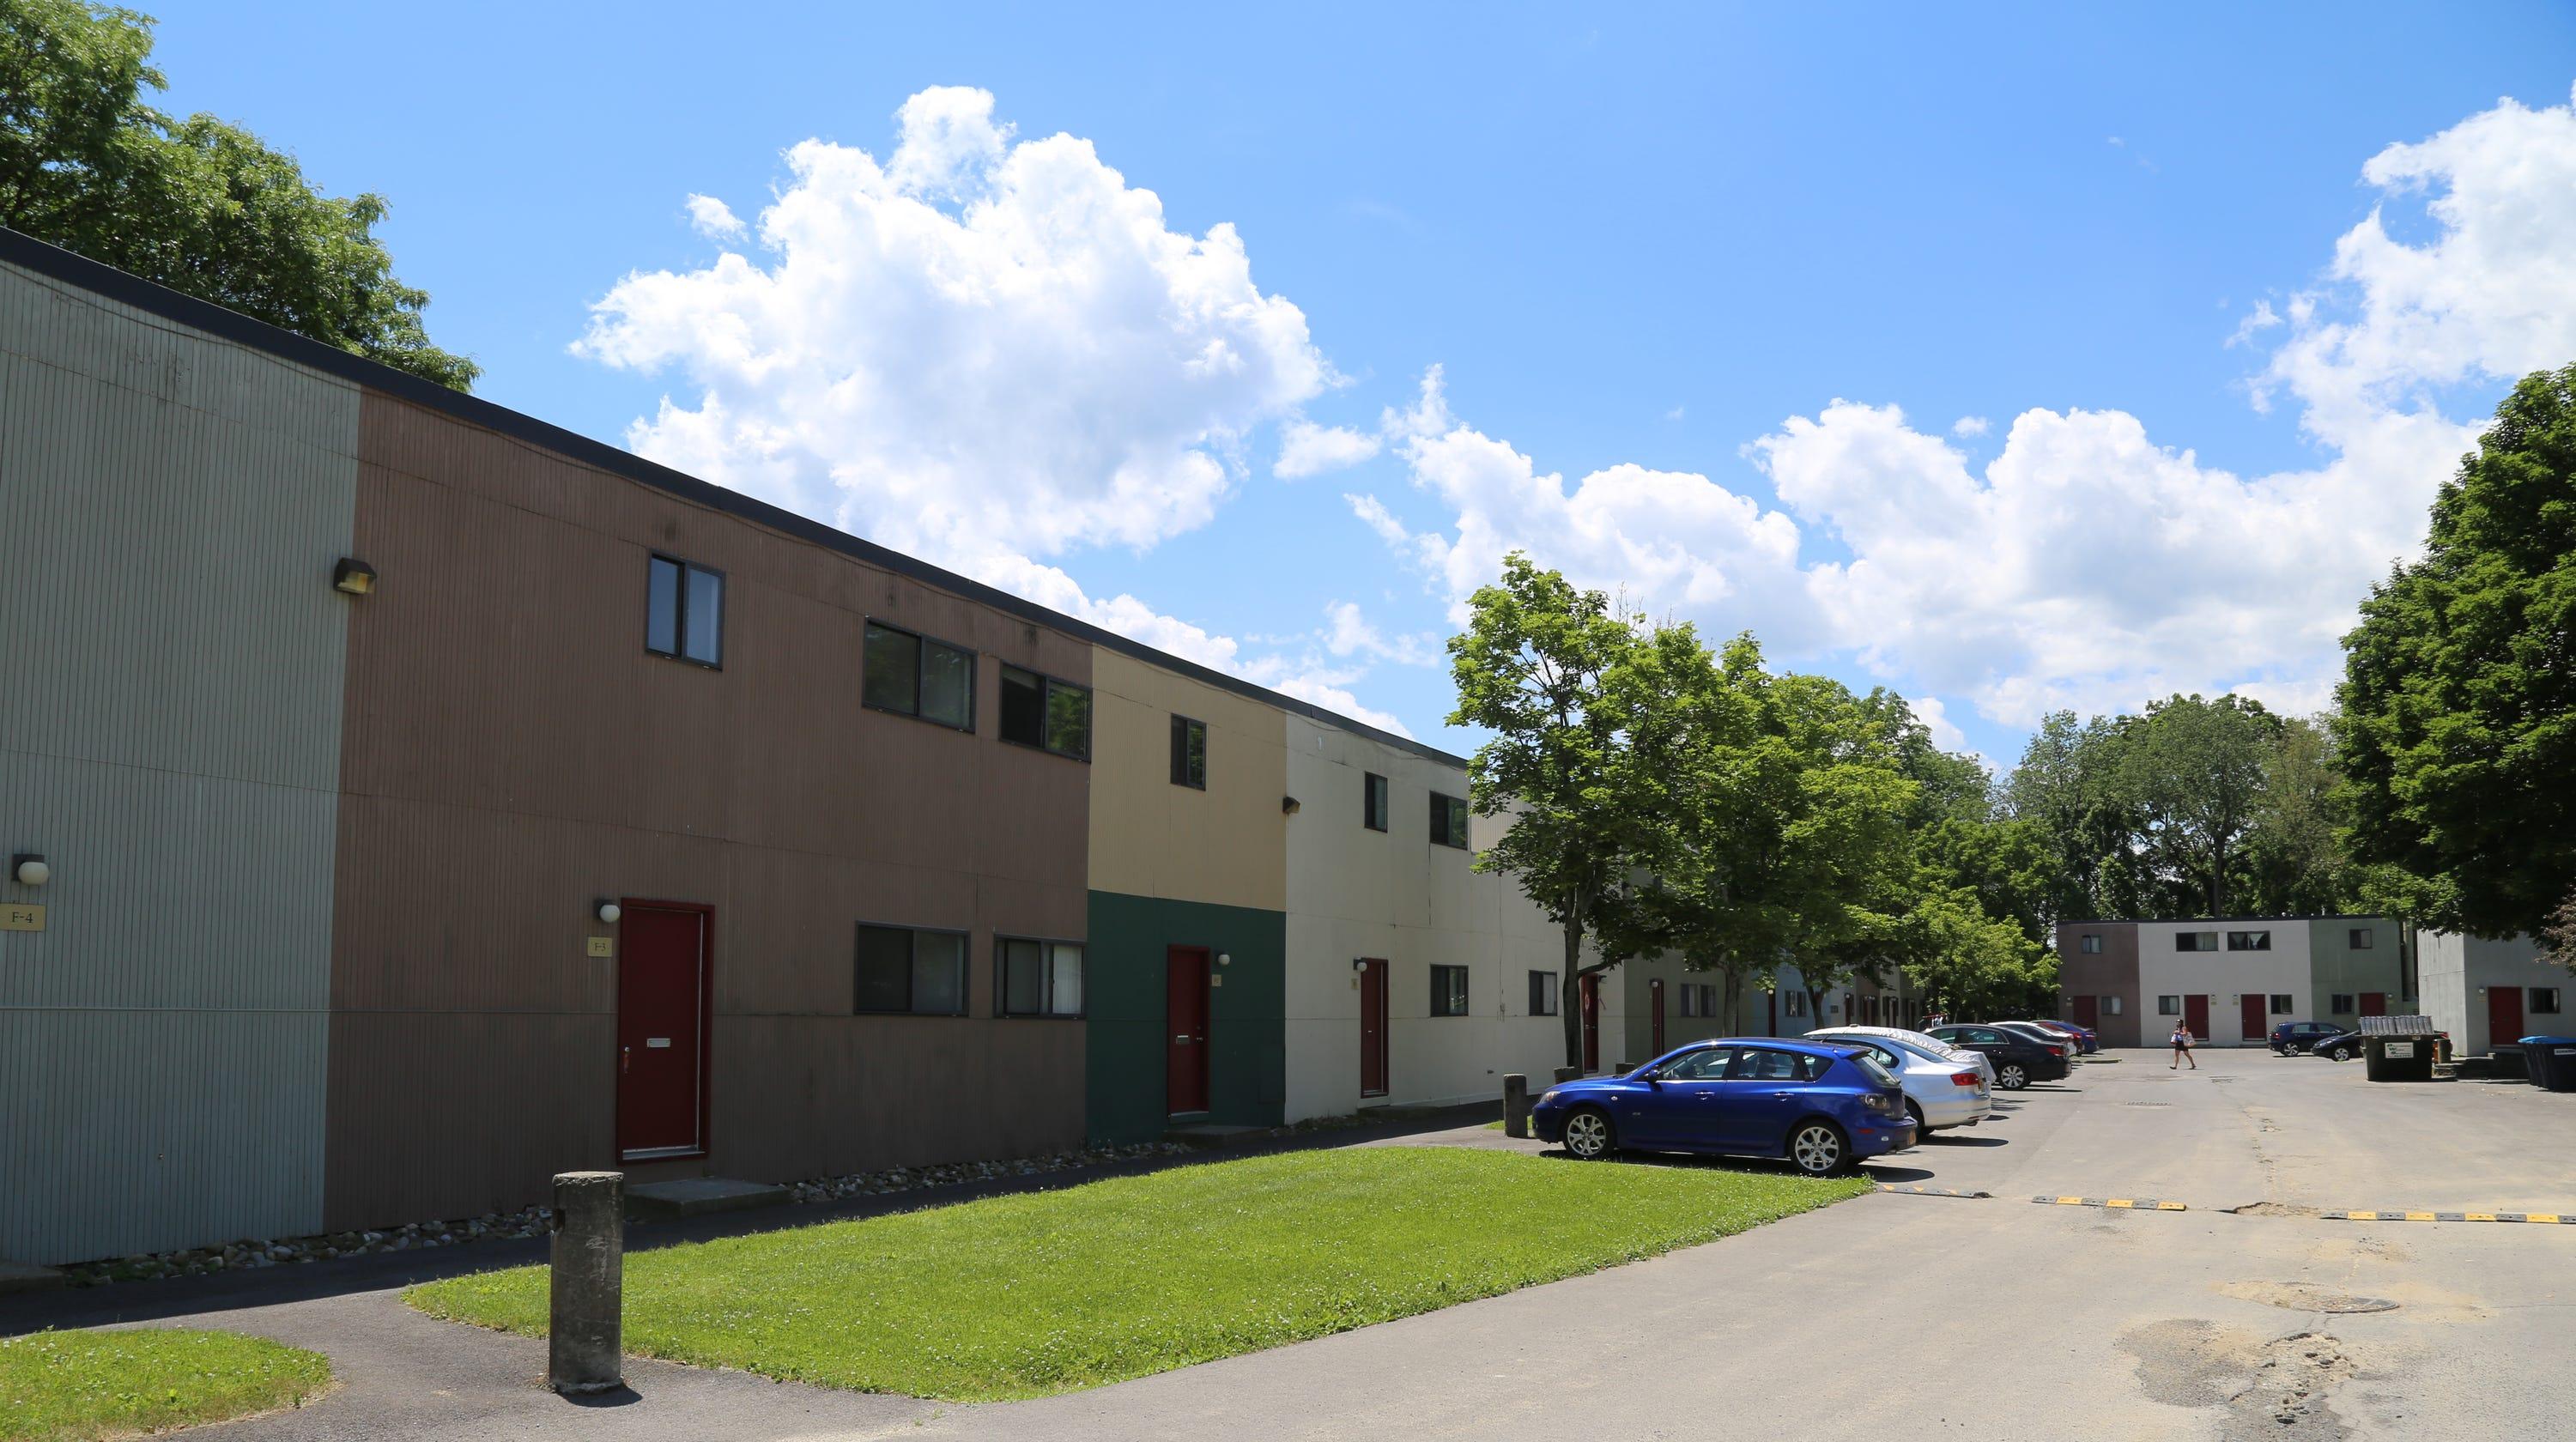 Ithaca East Apartments to close and turned over to Cornell